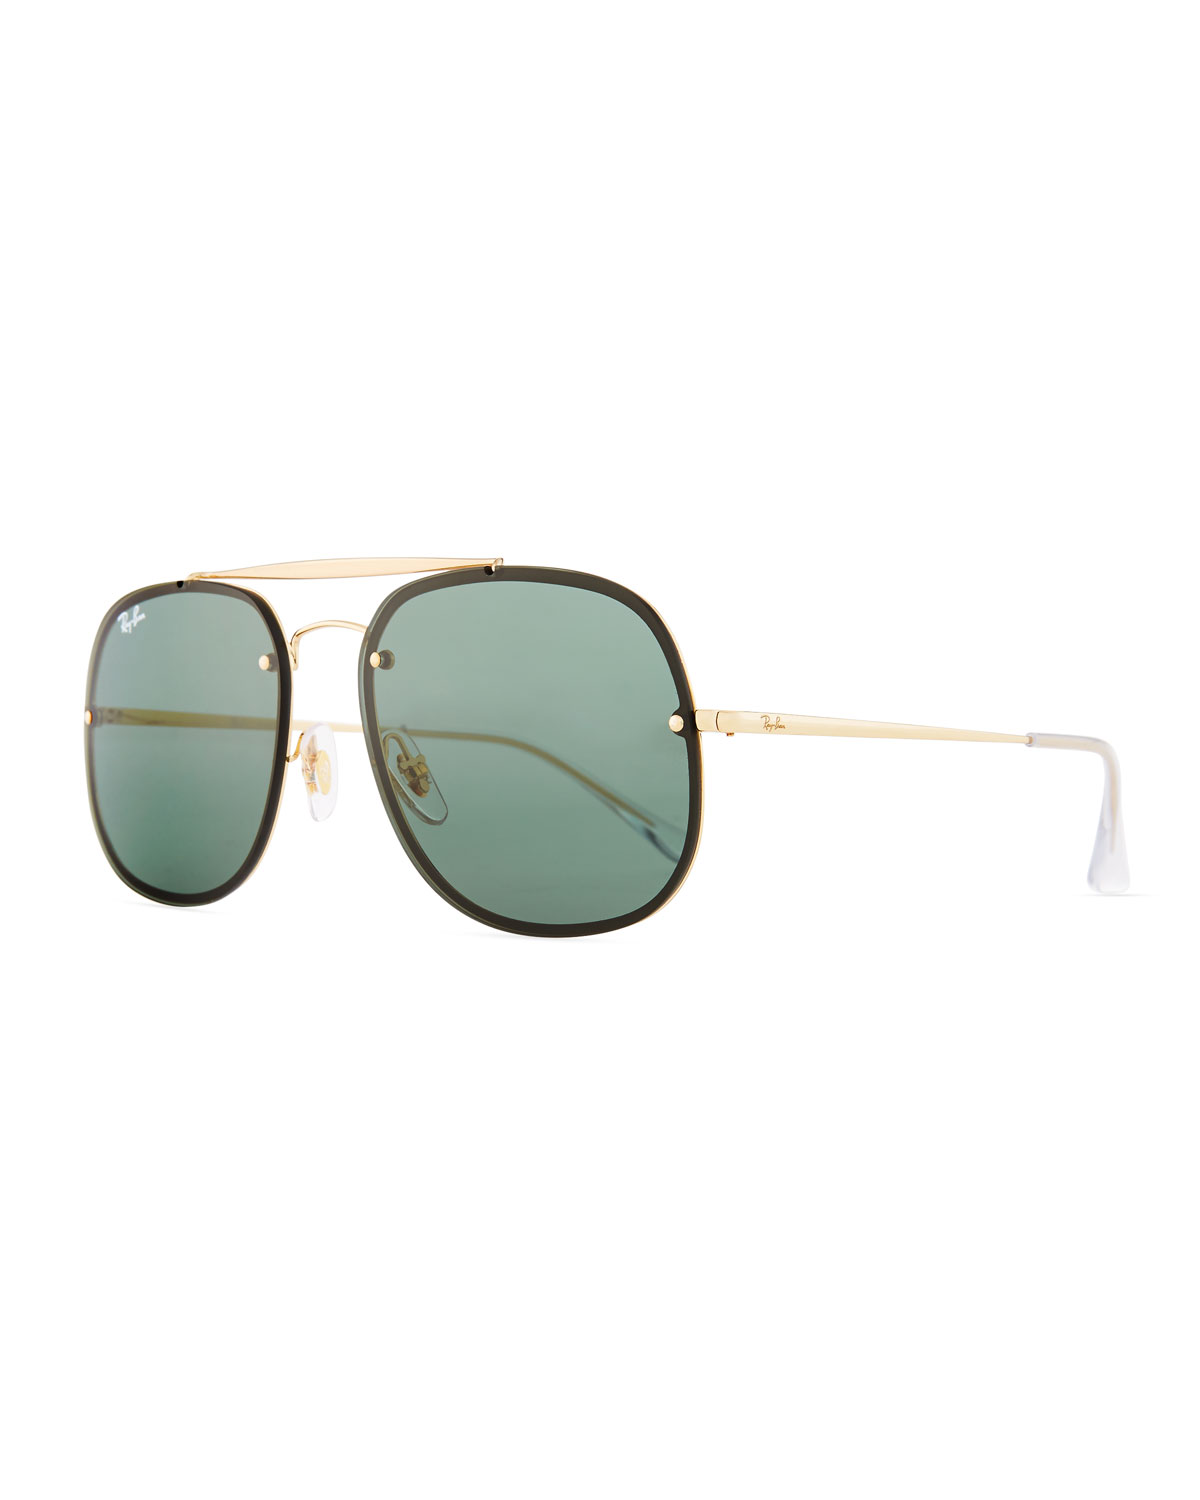 86df426807 RAY BAN Ray-Ban Blaze General Brow Bar Square Aviator Sunglasses ...